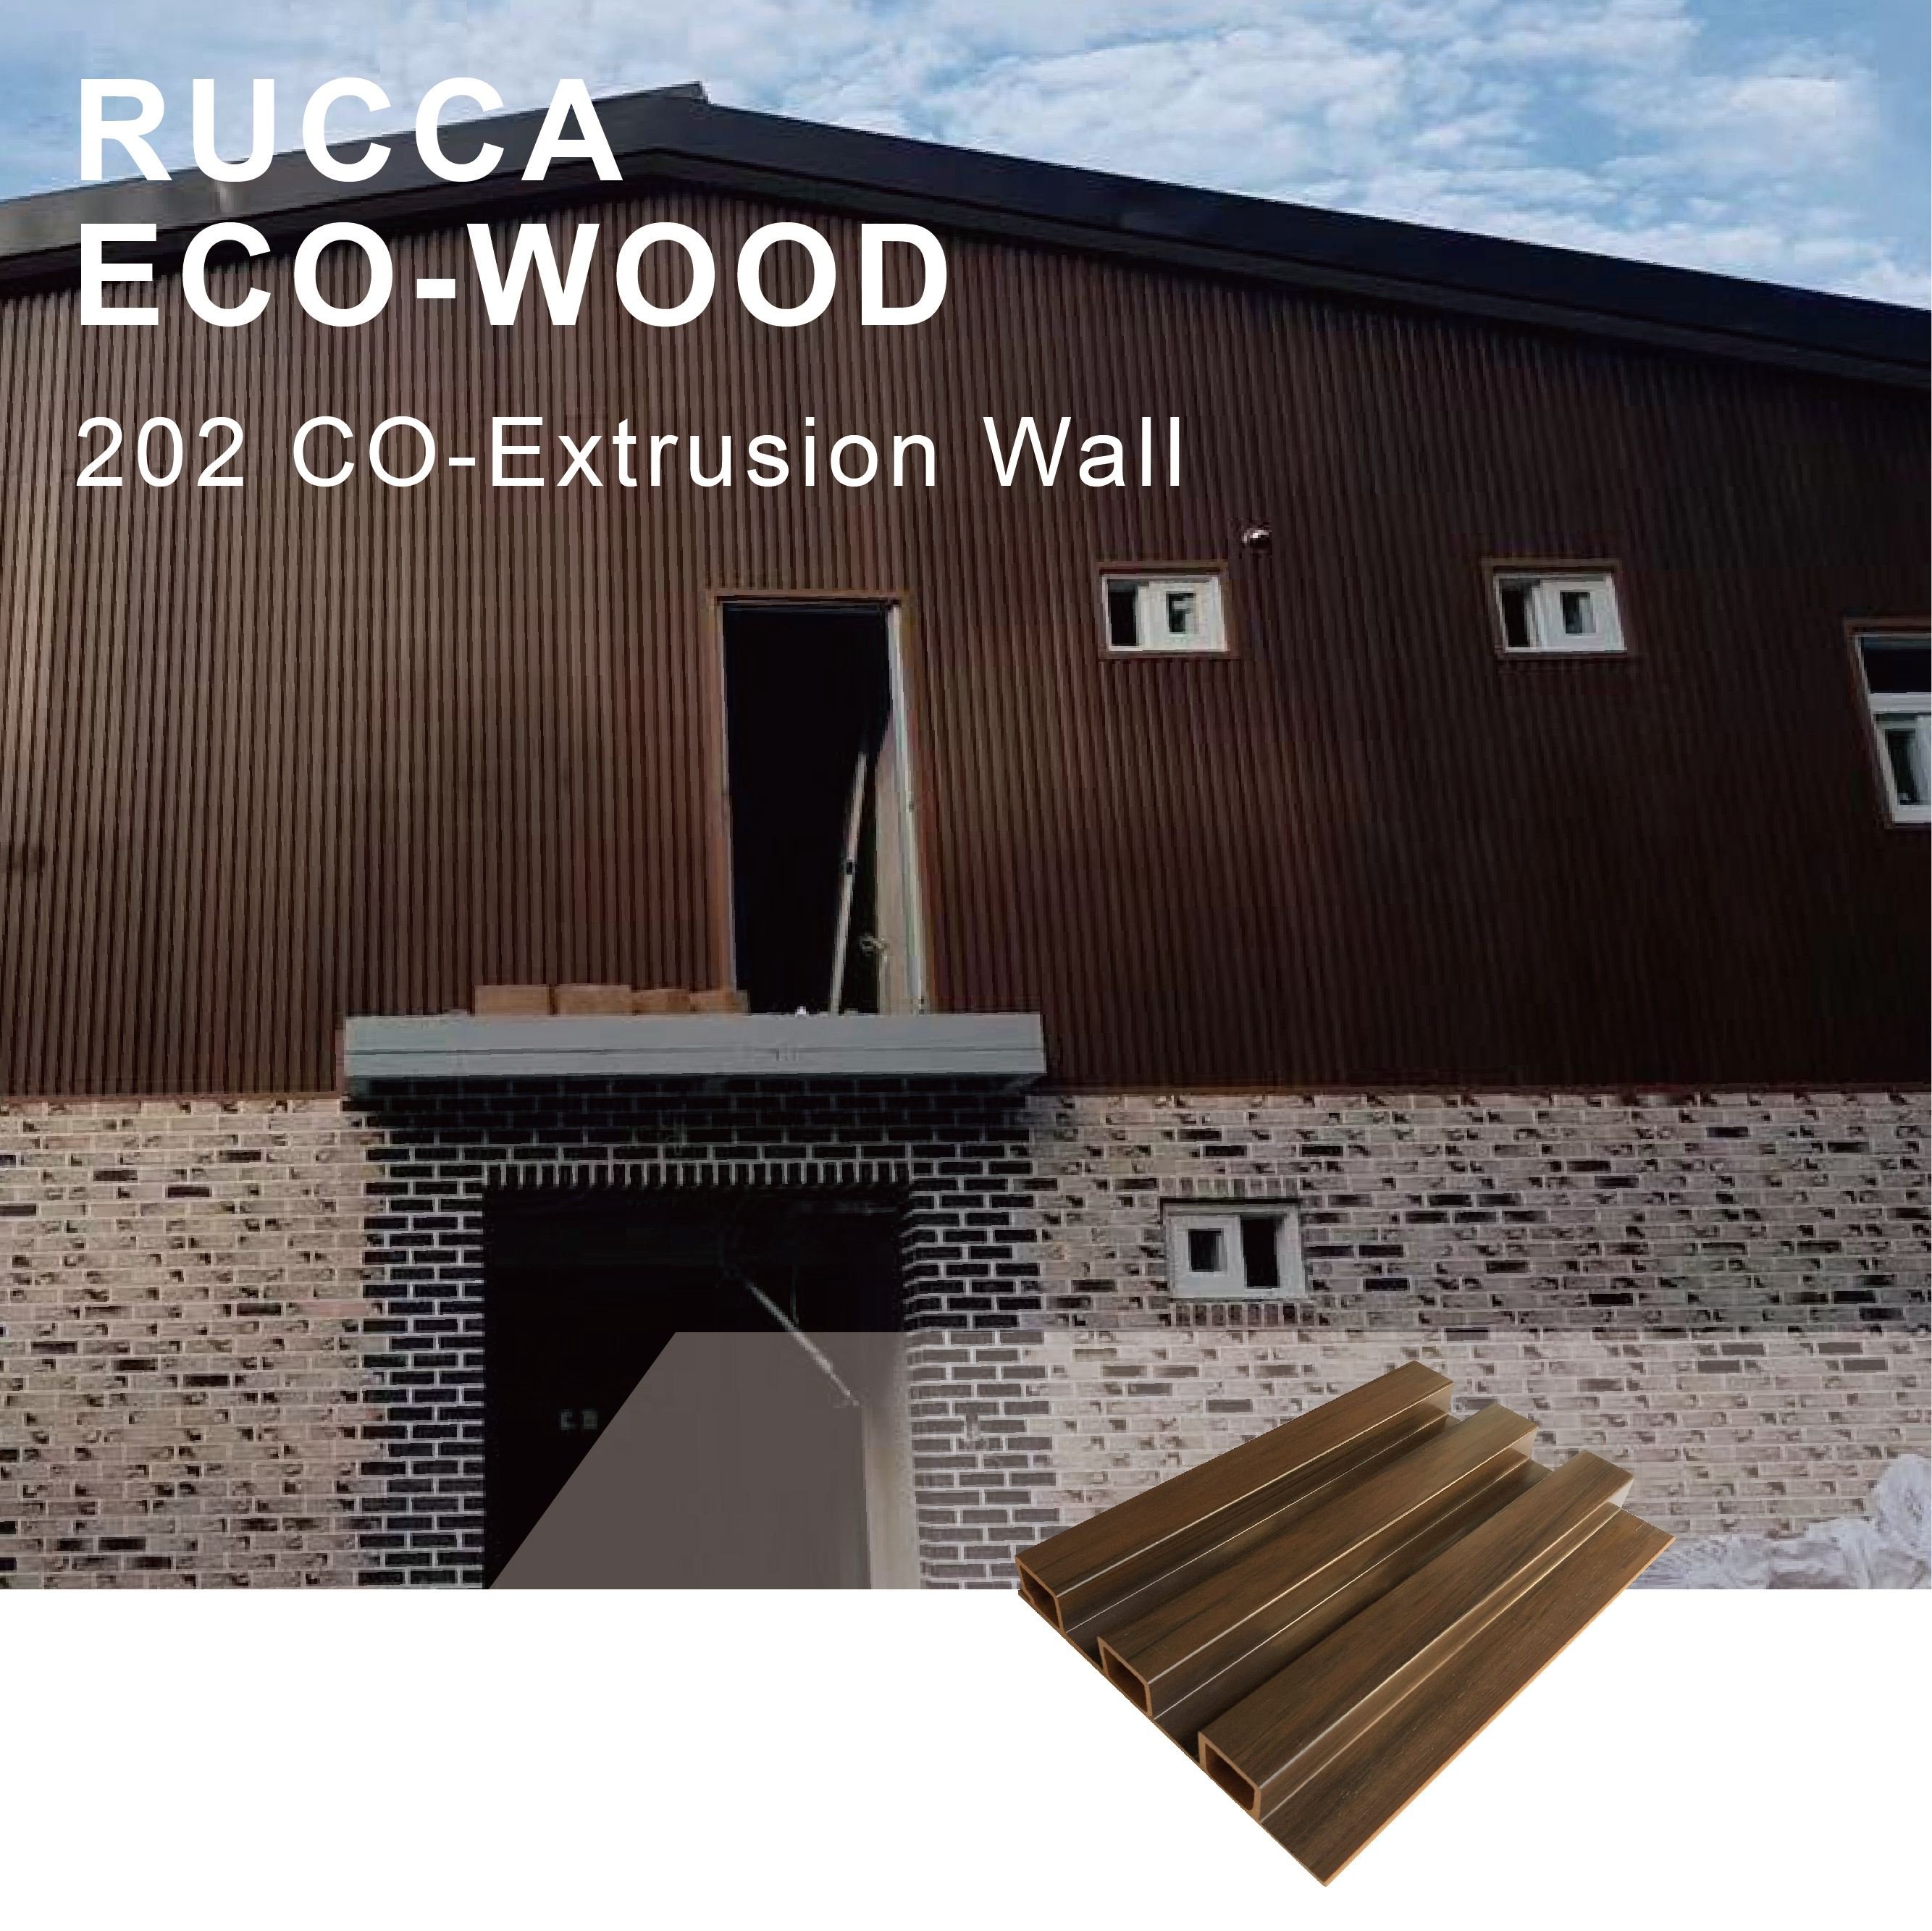 Rucca Eco Wood Exterior Luxury Decorative Wall Cladding Panel Prefabricated Homes Best Price from factory supplier